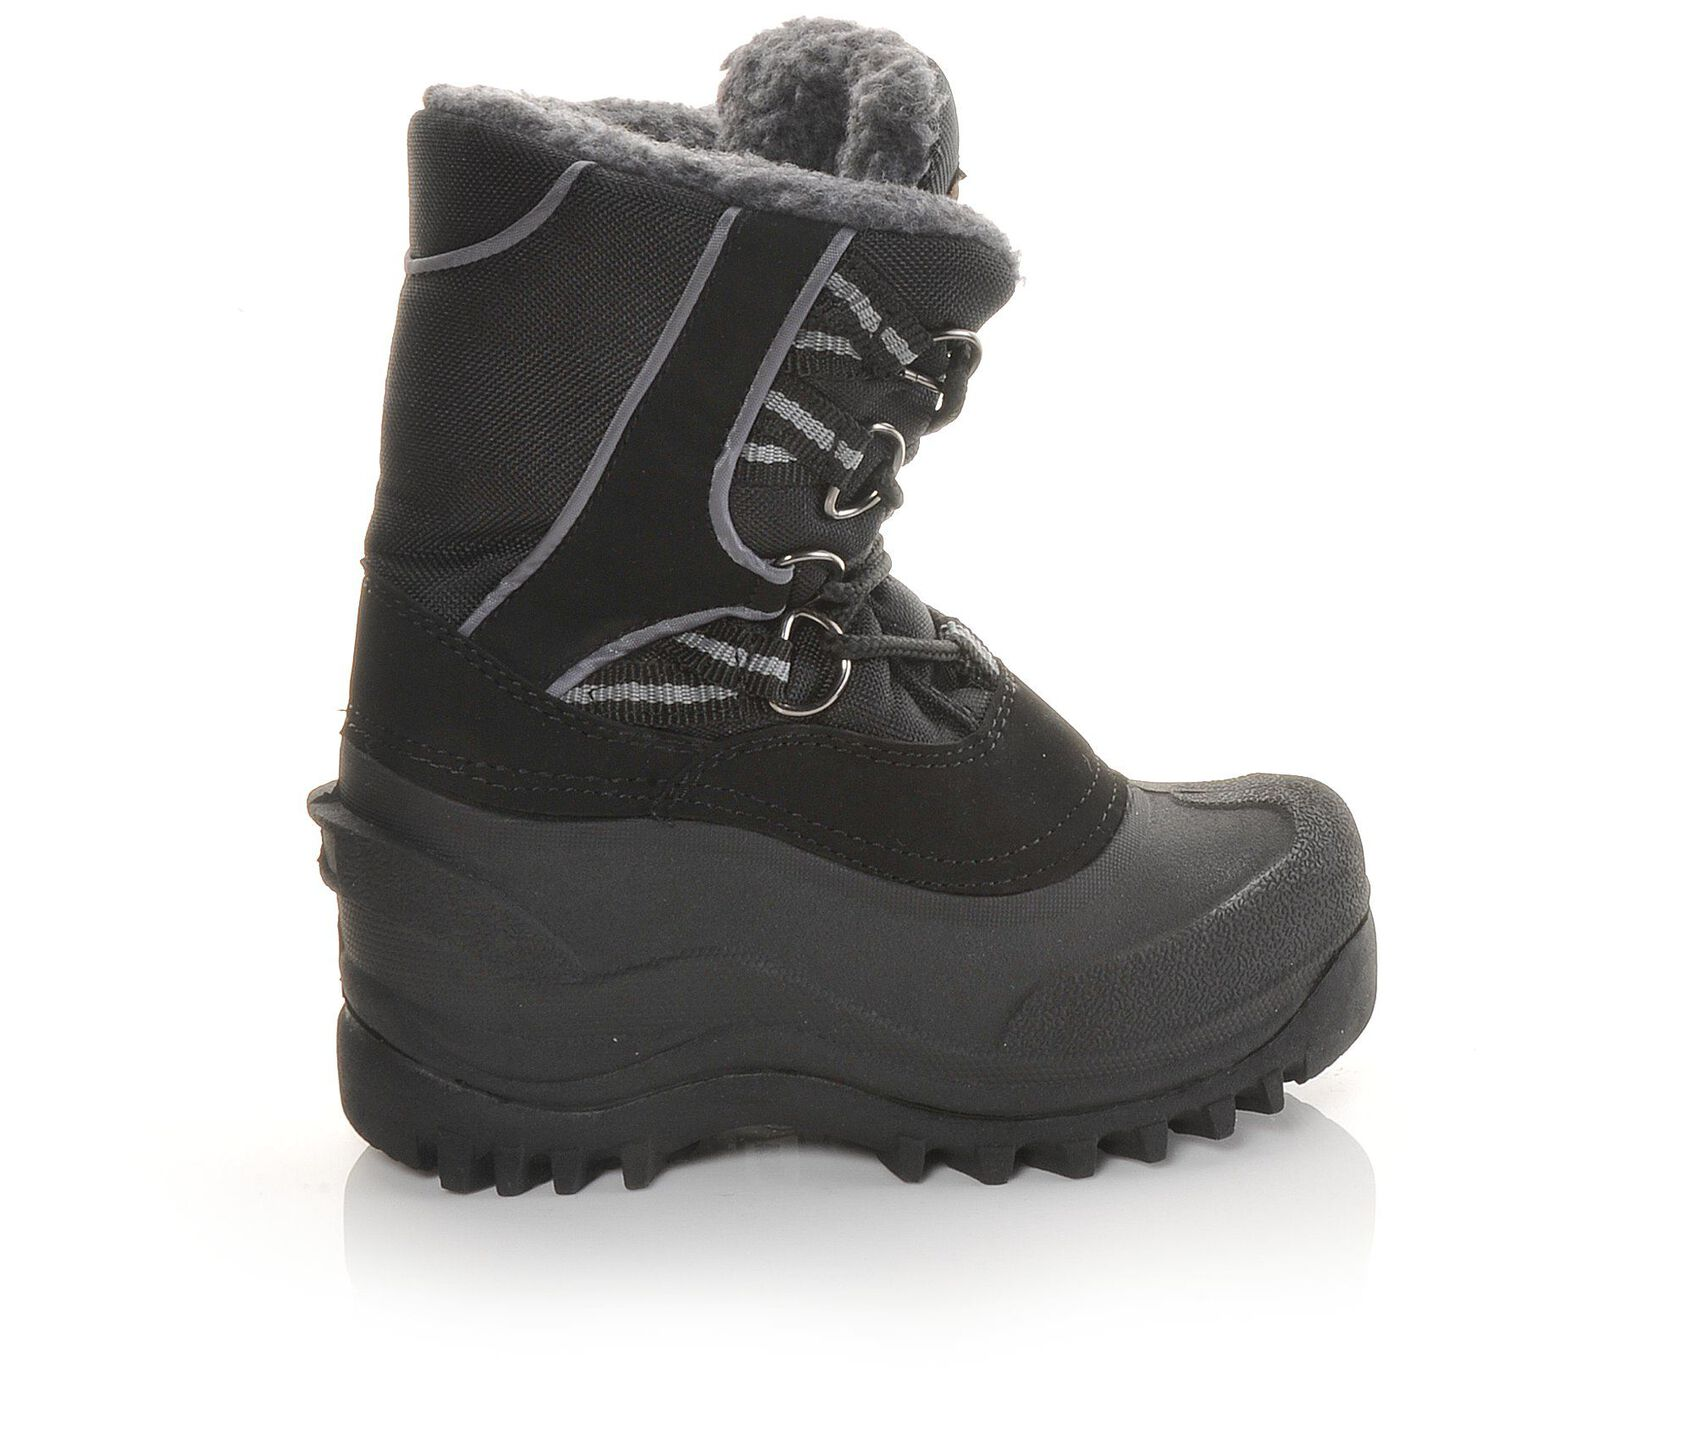 db950c0e9ed95 Boys' Itasca Sonoma Toddler & Little Kid Frost Winter Boots | Shoe ...